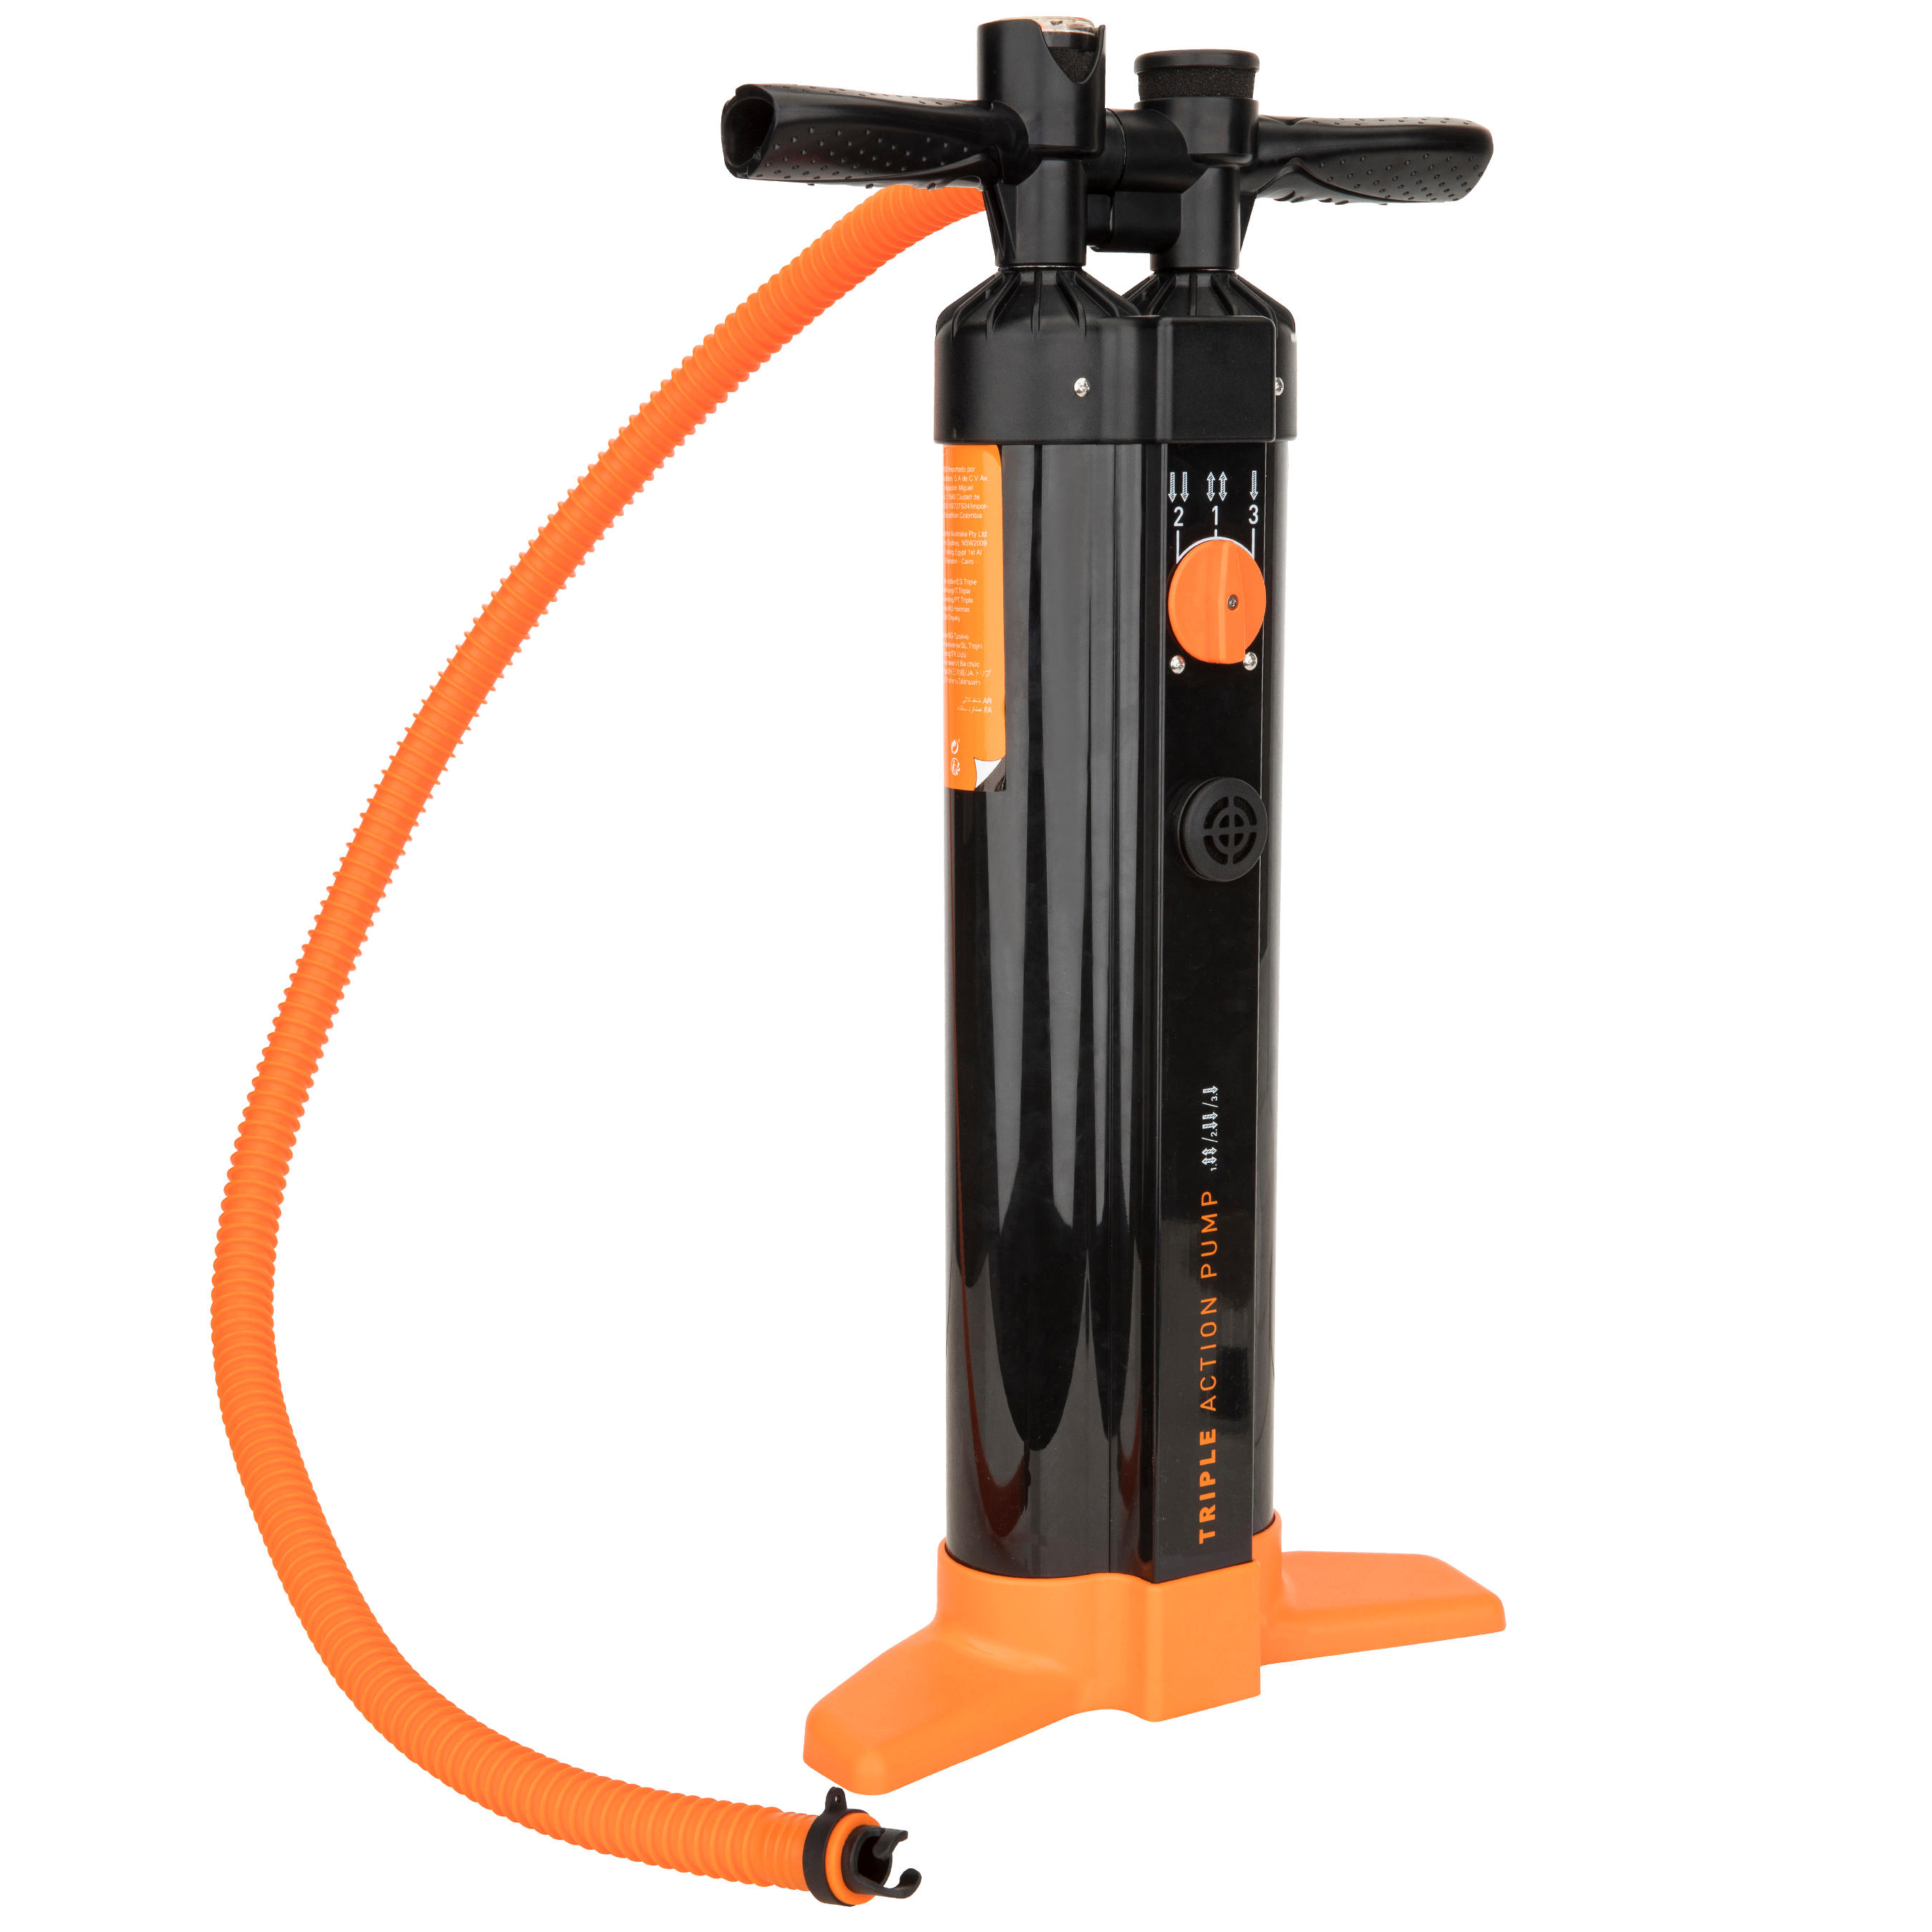 Triple Action High-Pressure Stand Up Paddle Hand Pump 20 psi - Black Orange